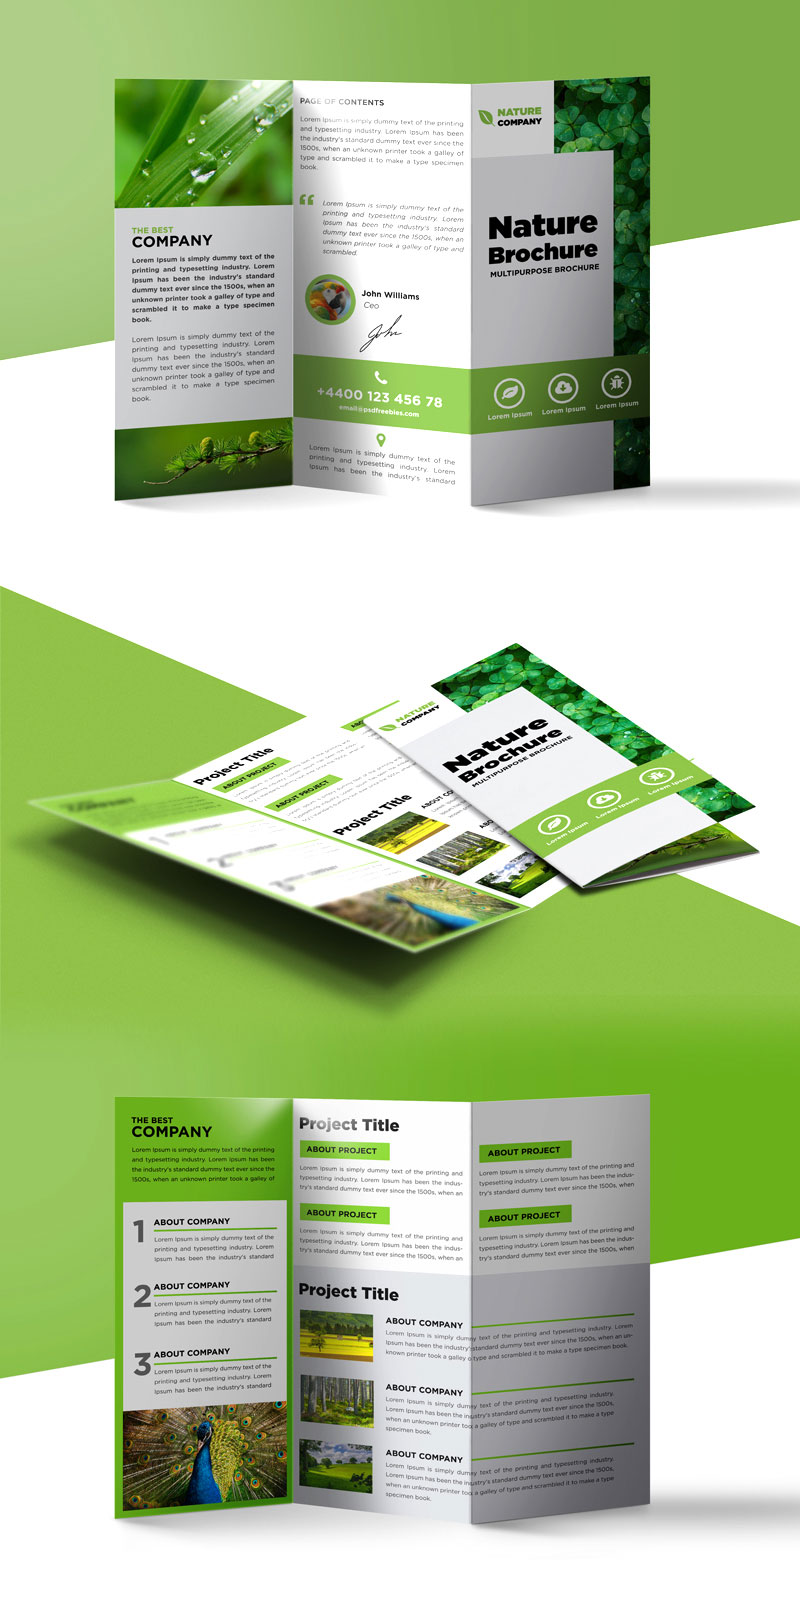 Nature tri fold brochure template free psd for Tri fold brochure template psd